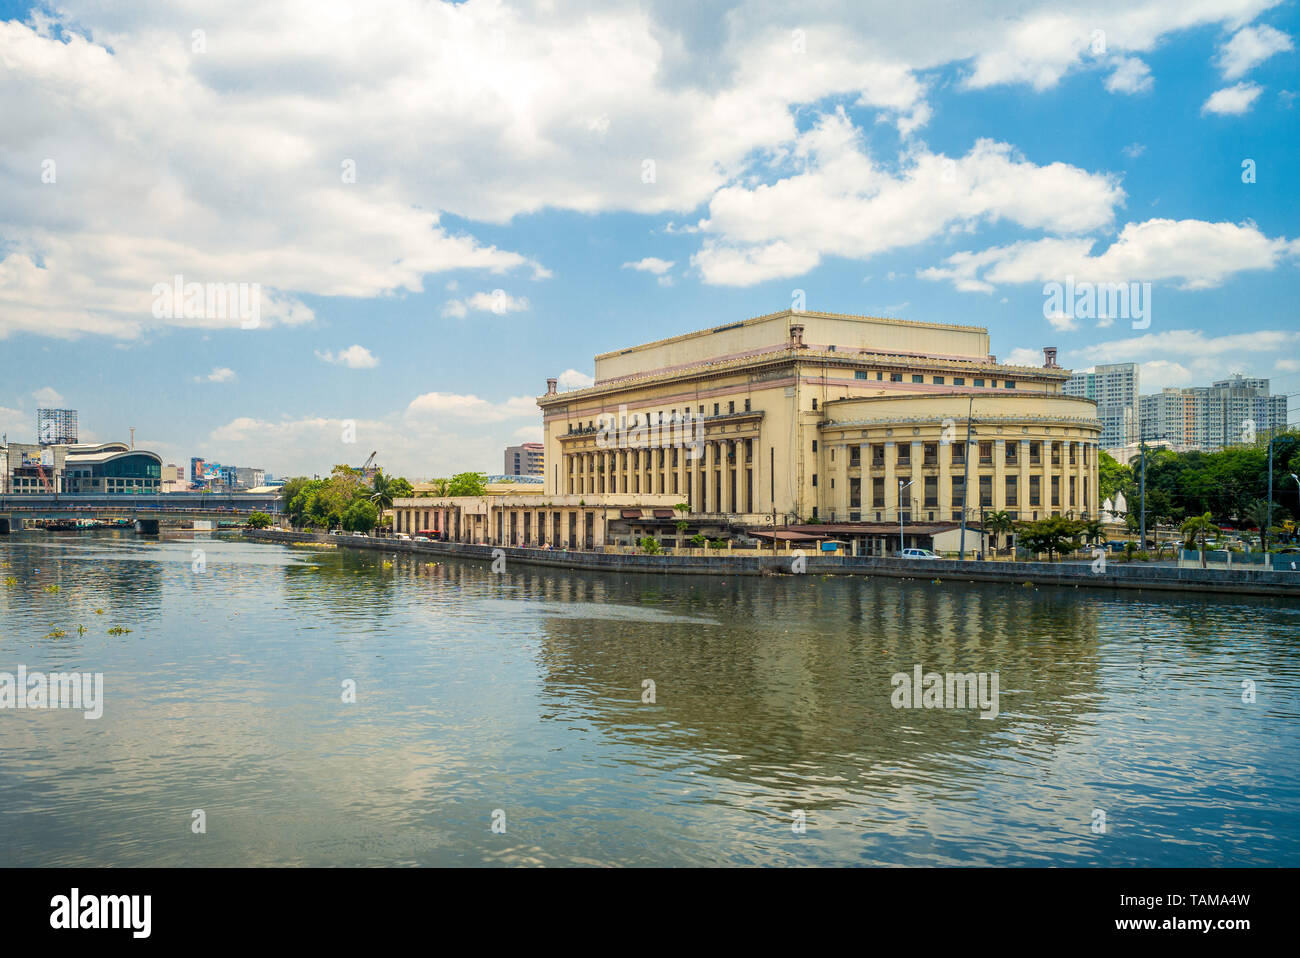 Manila Central Post Office Building in philippines - Stock Image